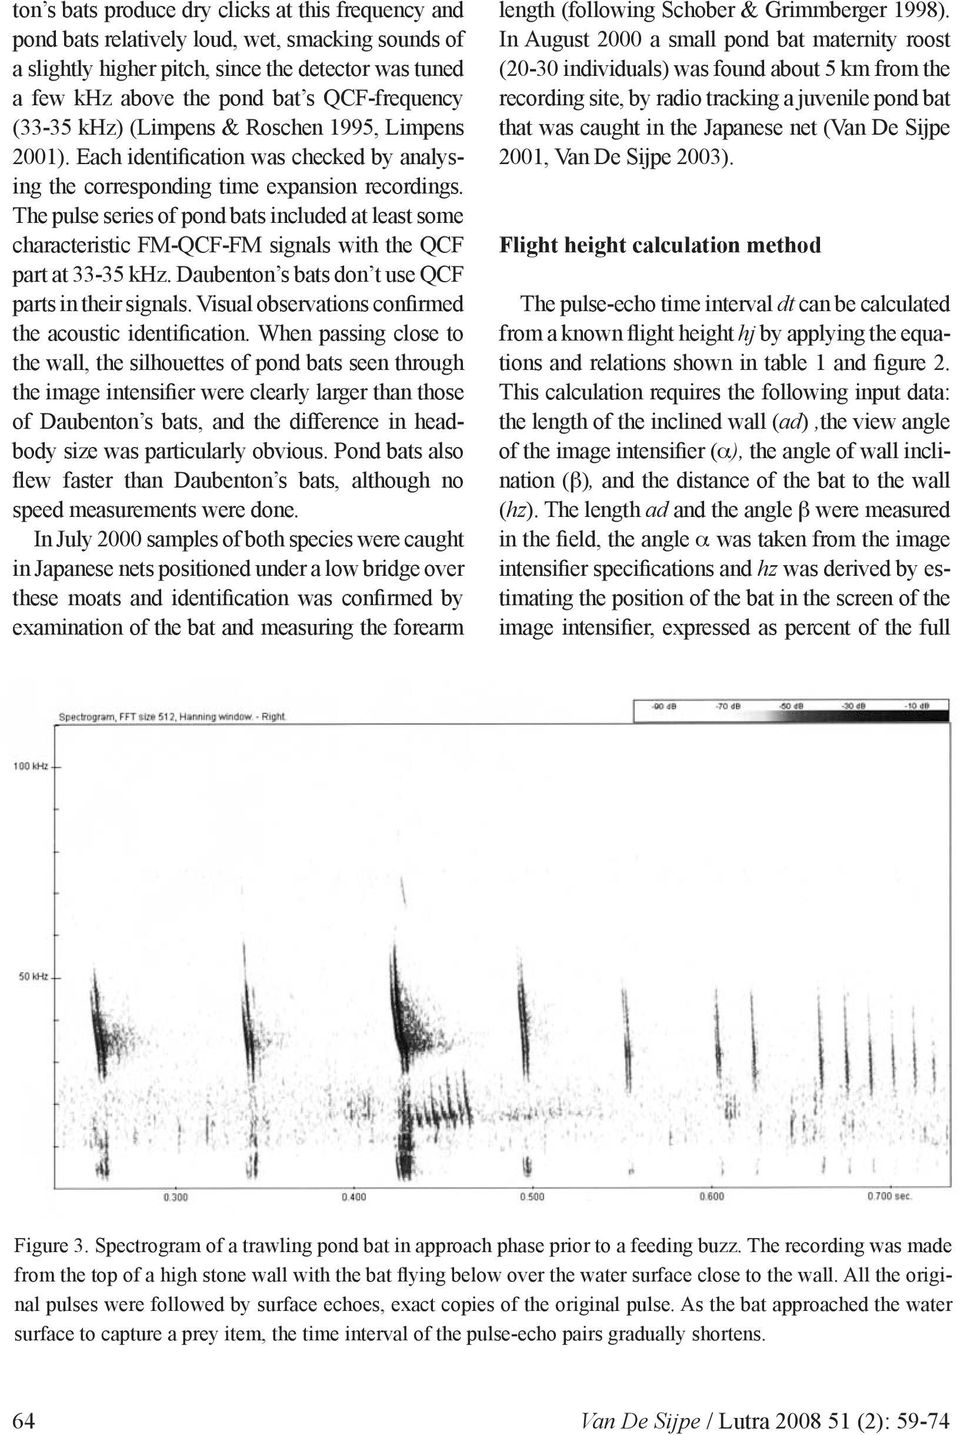 The pulse series of pond bats included at least some characteristic FM-QCF-FM signals with the QCF part at 33-35 khz. Daubenton s bats don t use QCF parts in their signals.